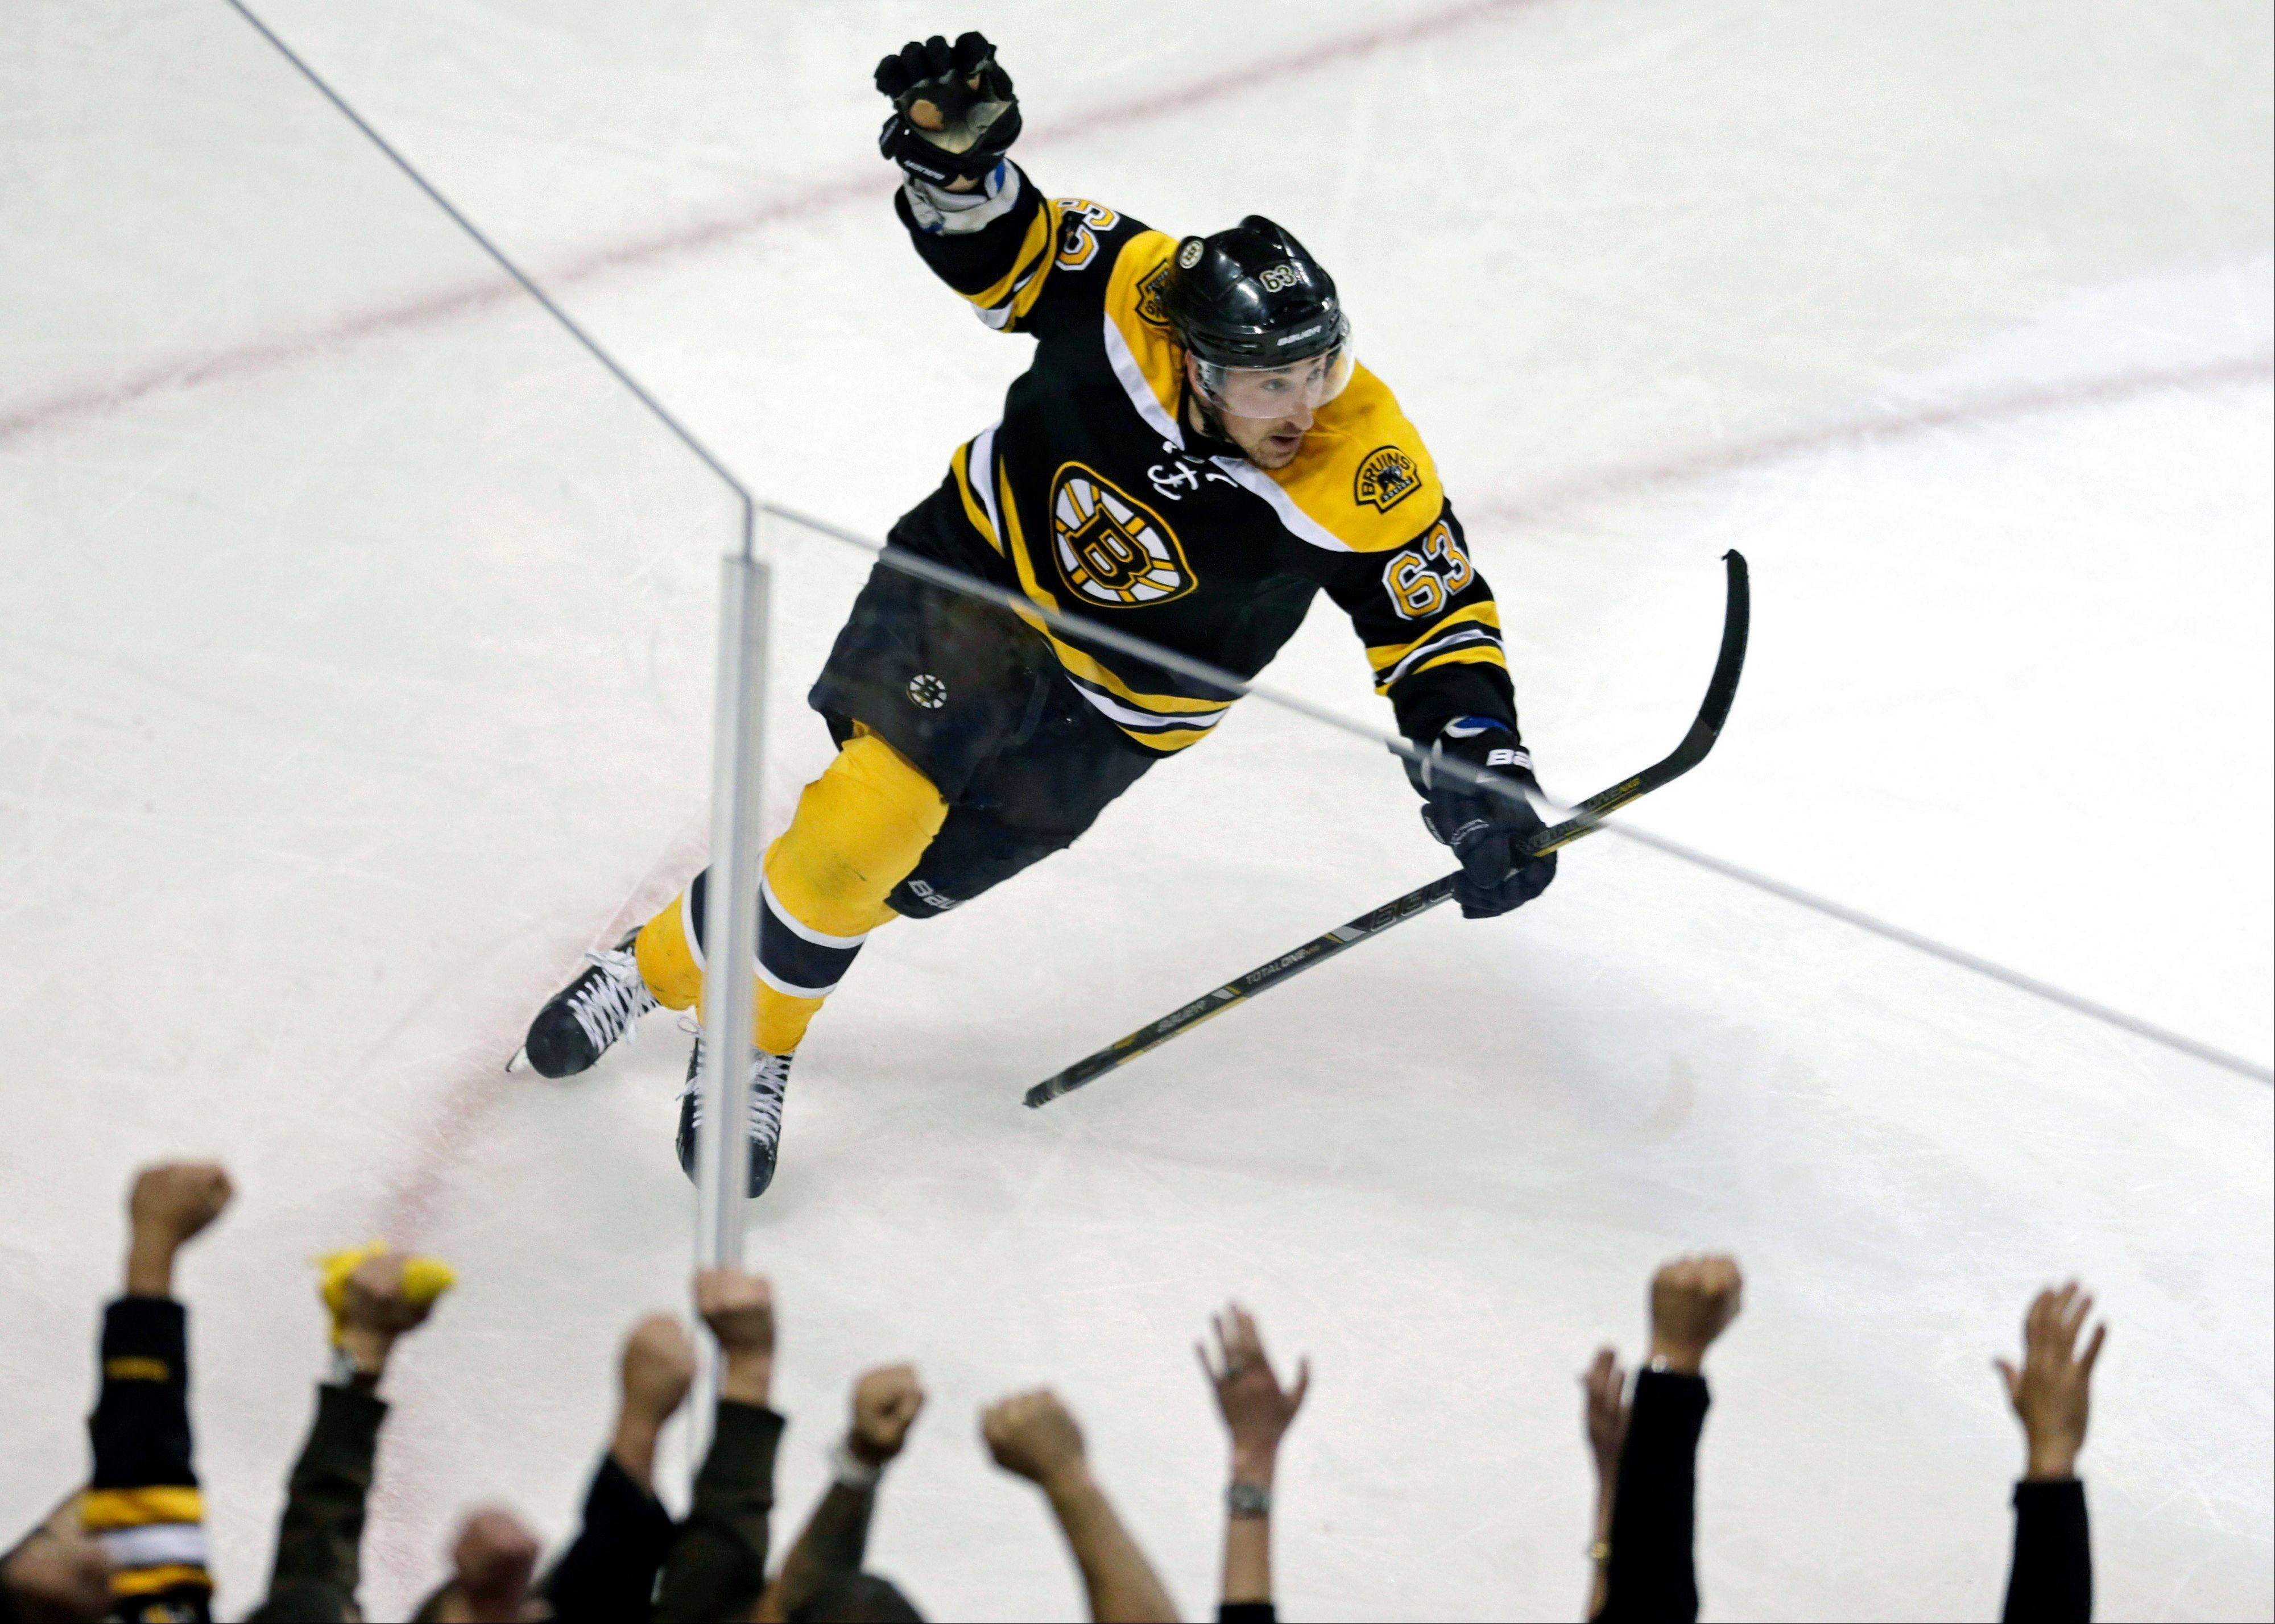 Boston Bruins left wing Brad Marchand celebrates following his game-winning goal against New York Rangers goalie Henrik Lundqvist during overtime in Game 1 of an NHL hockey playoffs Eastern Conference semifinal game in Boston, Thursday, May 16, 2013. The Bruins won 3-2.